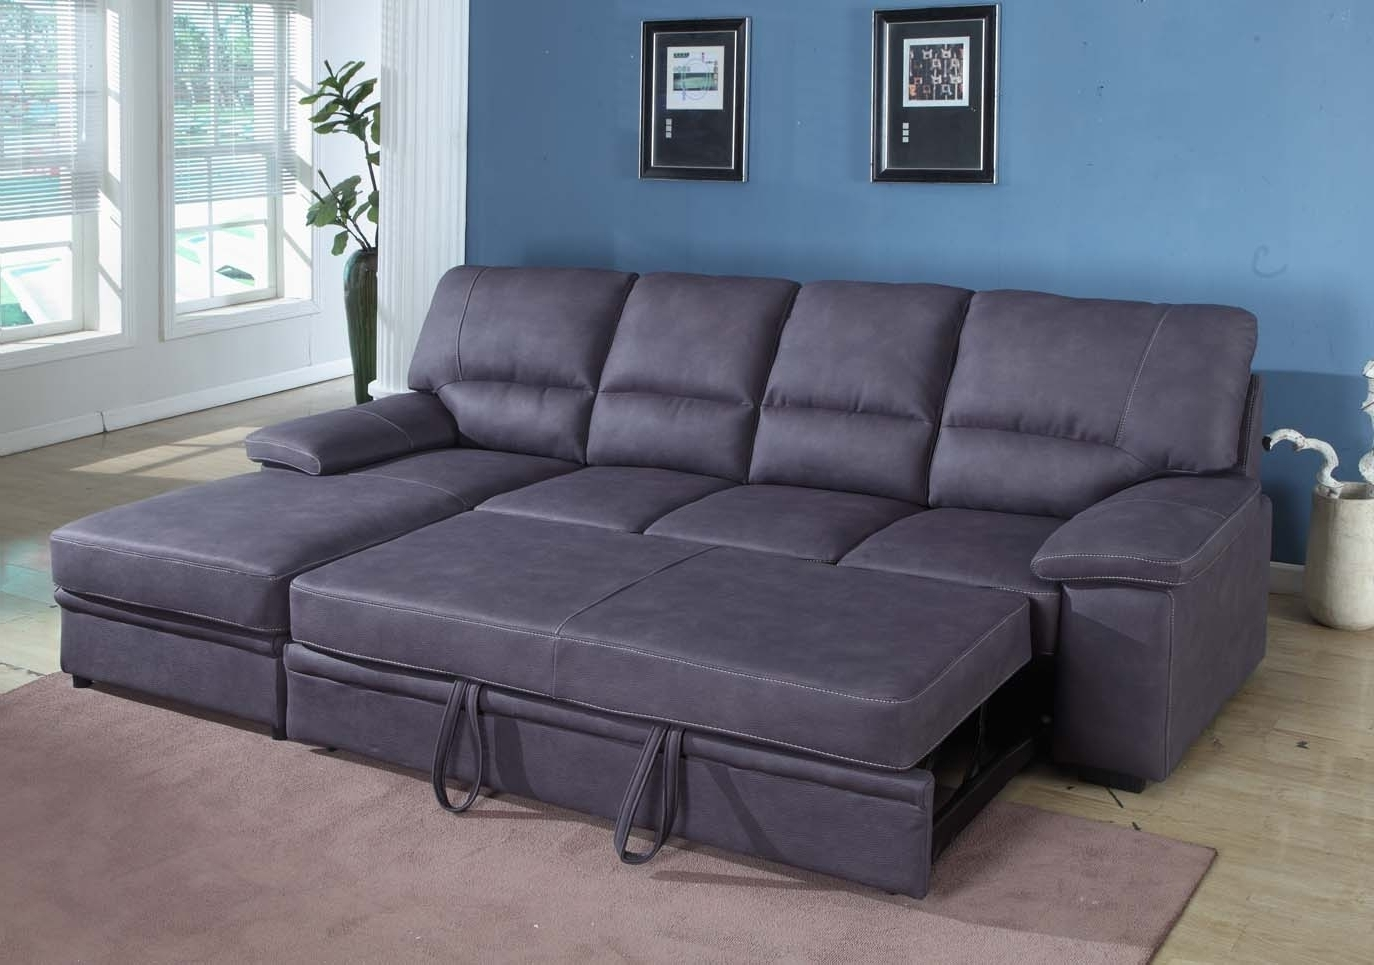 Most Current Ottoman Sleeper Sofa, Make A Chaise With Storage Ottoman Chaise Inside Sofas With Chaise And Ottoman (View 9 of 15)